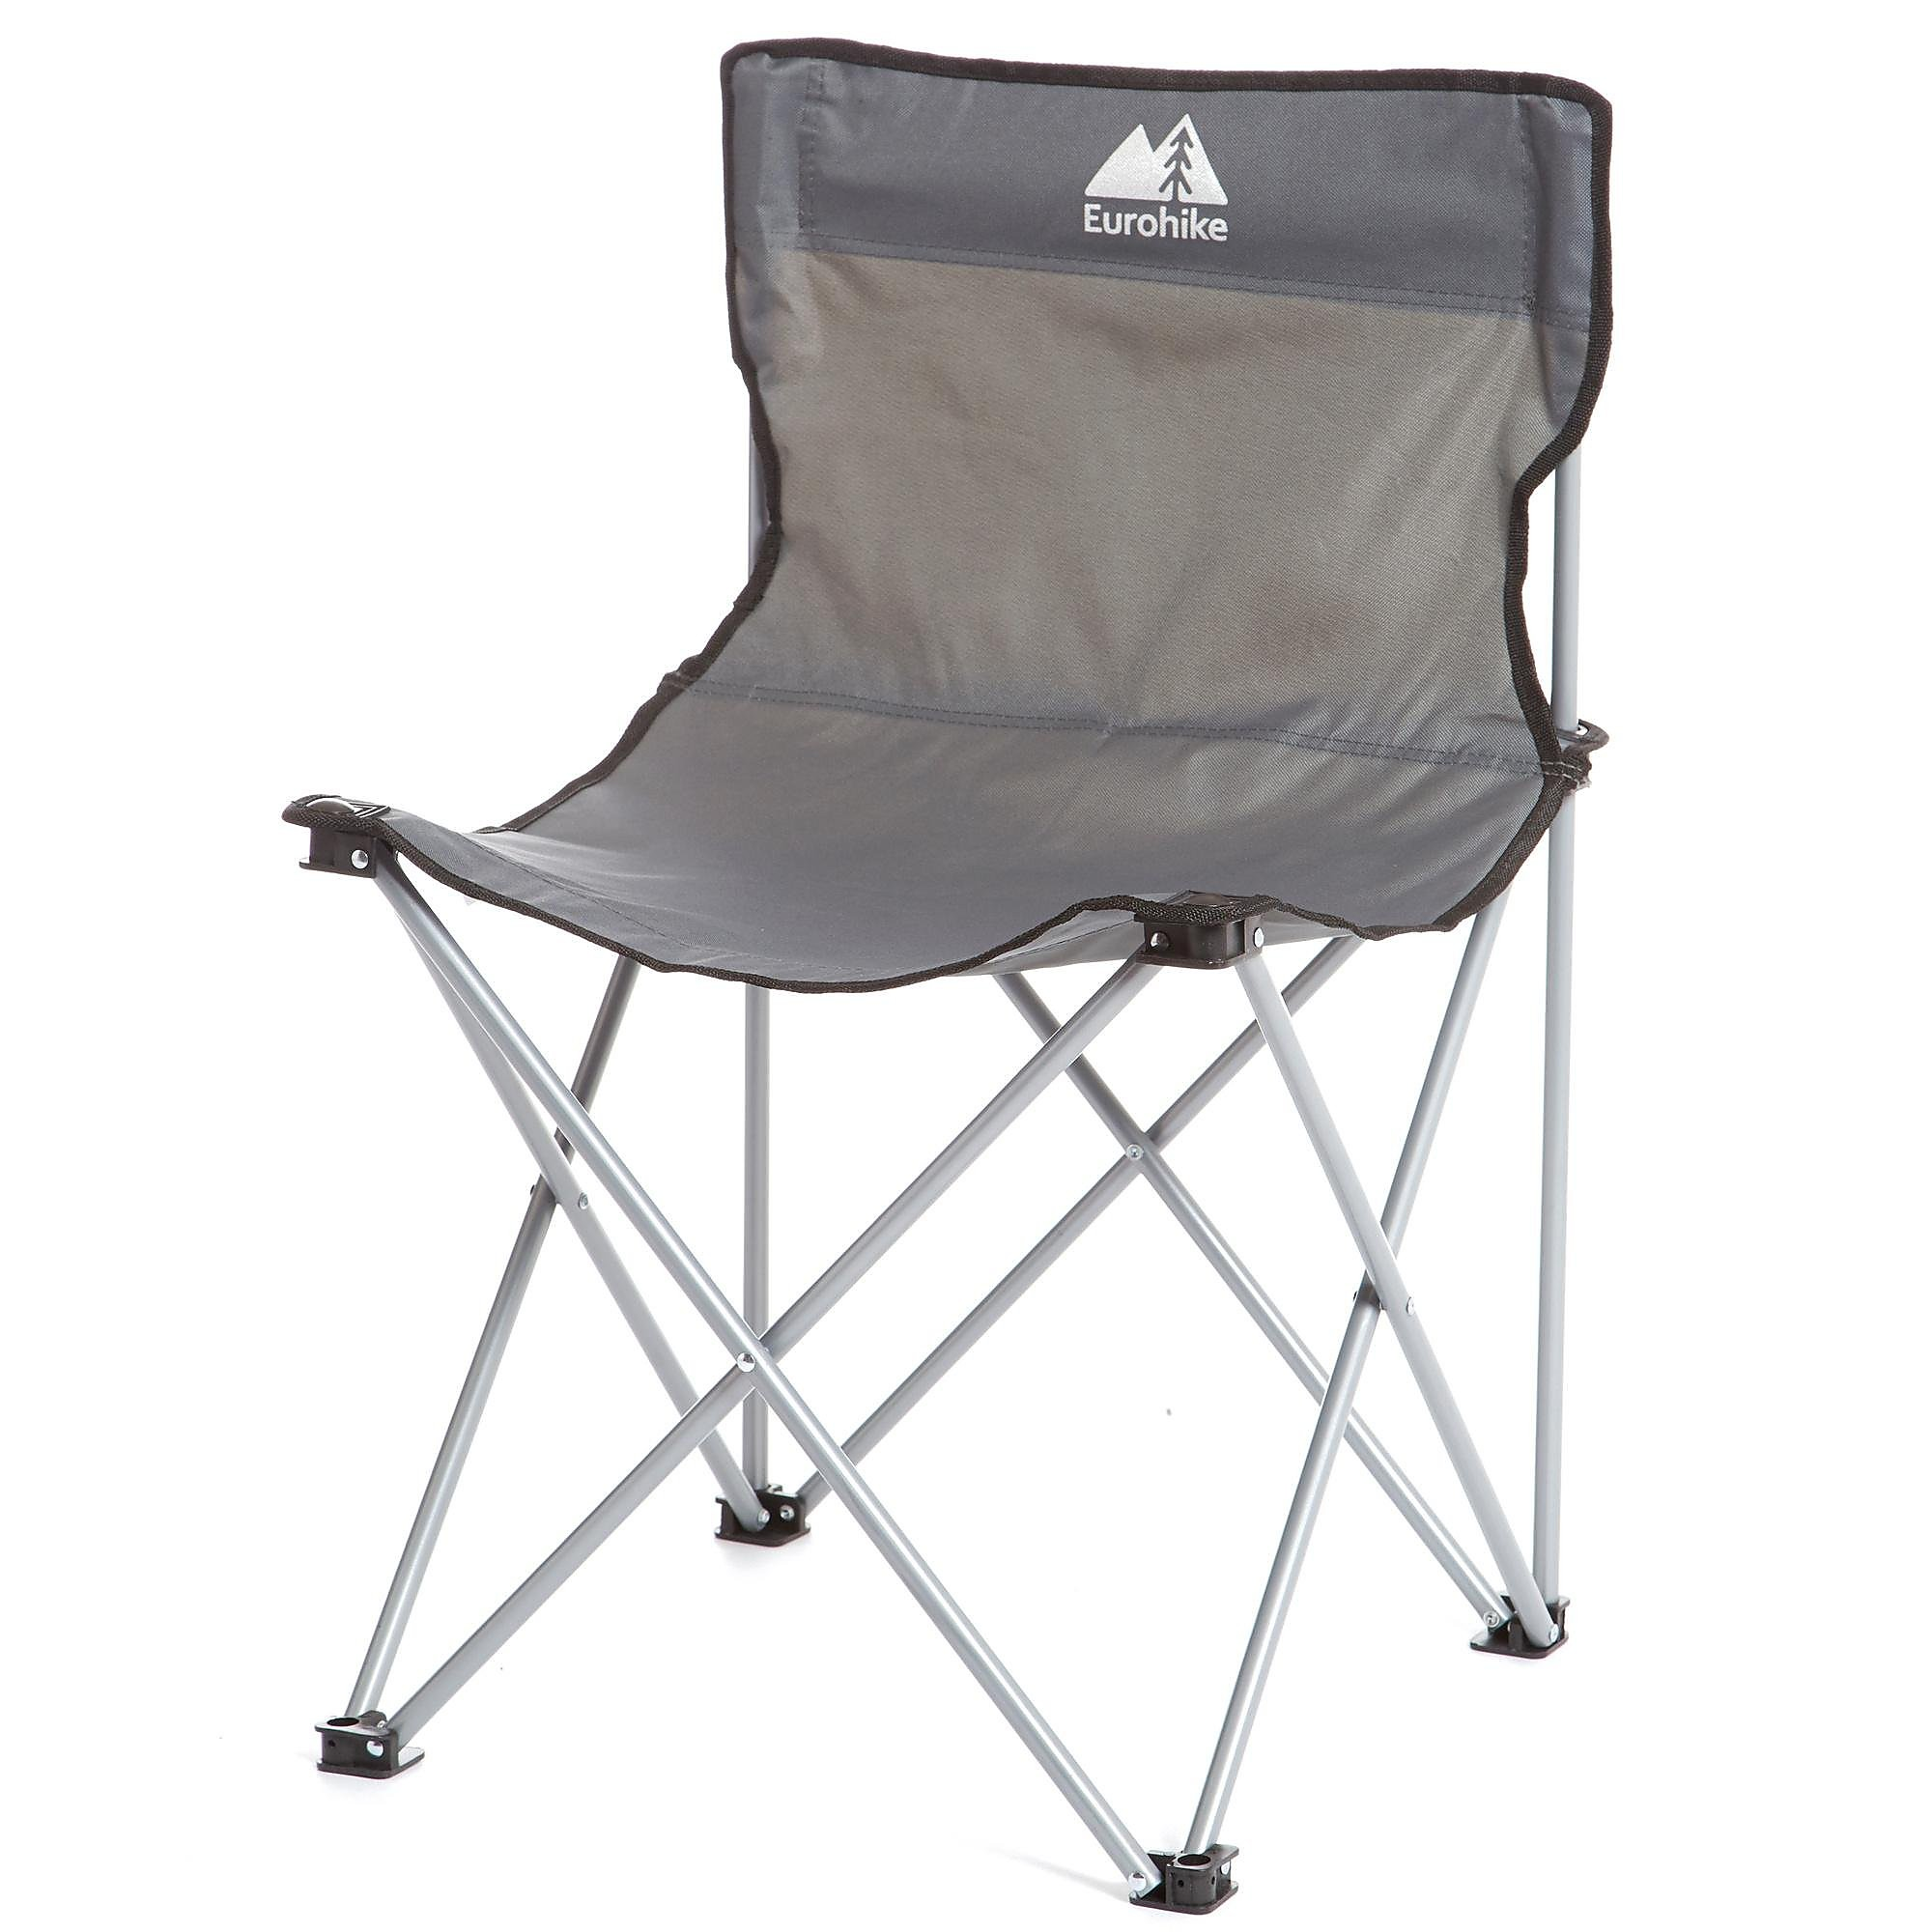 EUROHIKE Lowland Folding Chair